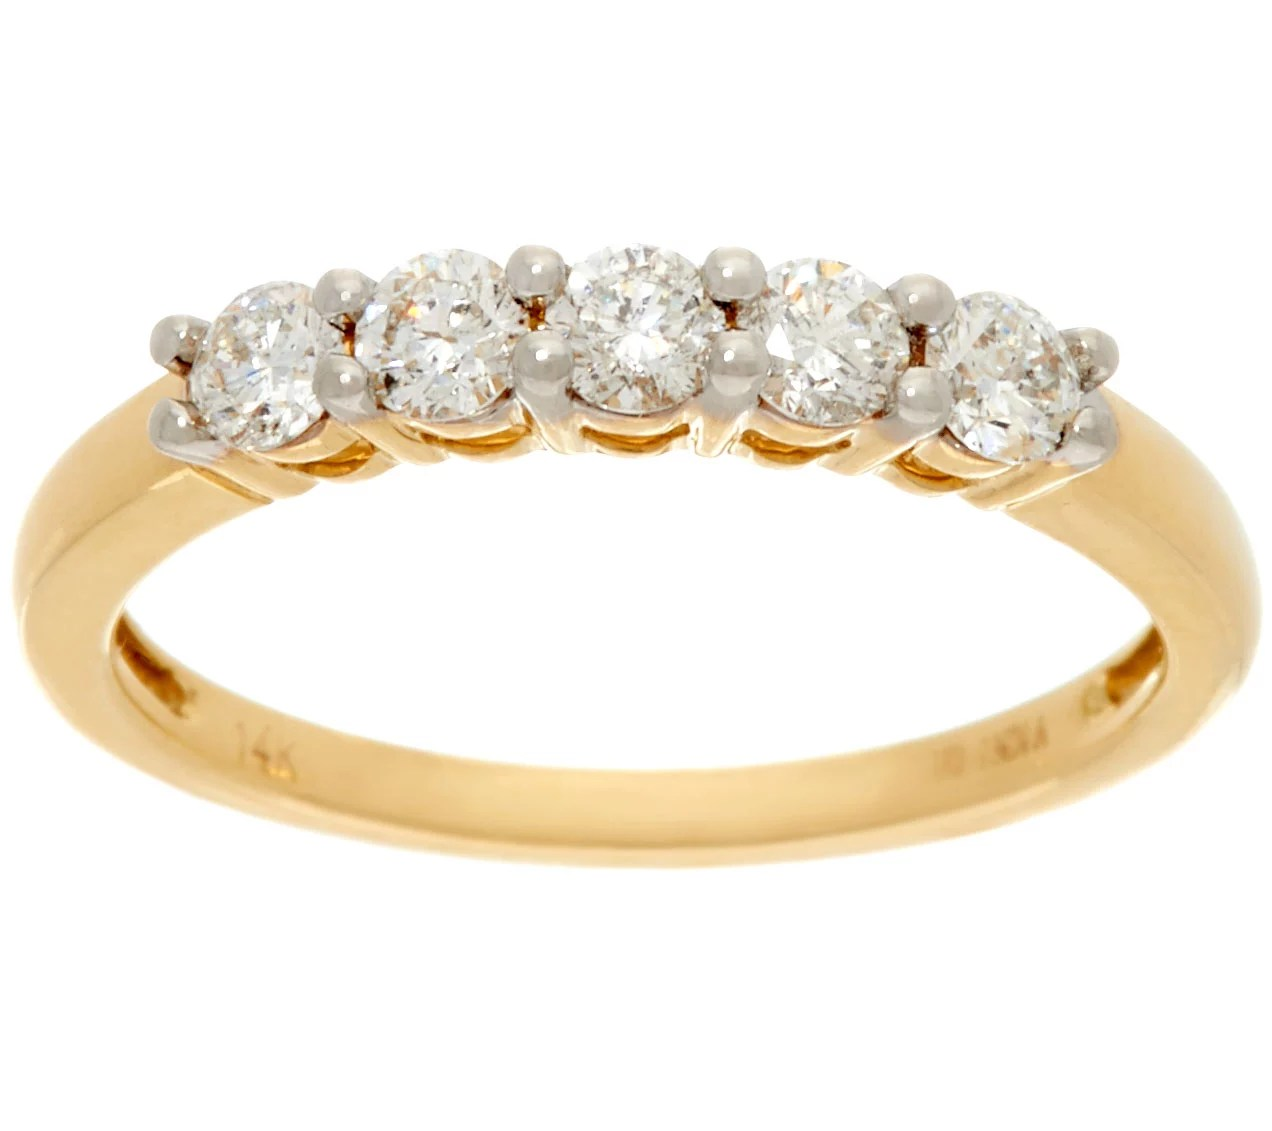 12 Cttw 5 Stone Diamond Band Ring 14K Gold Affinity